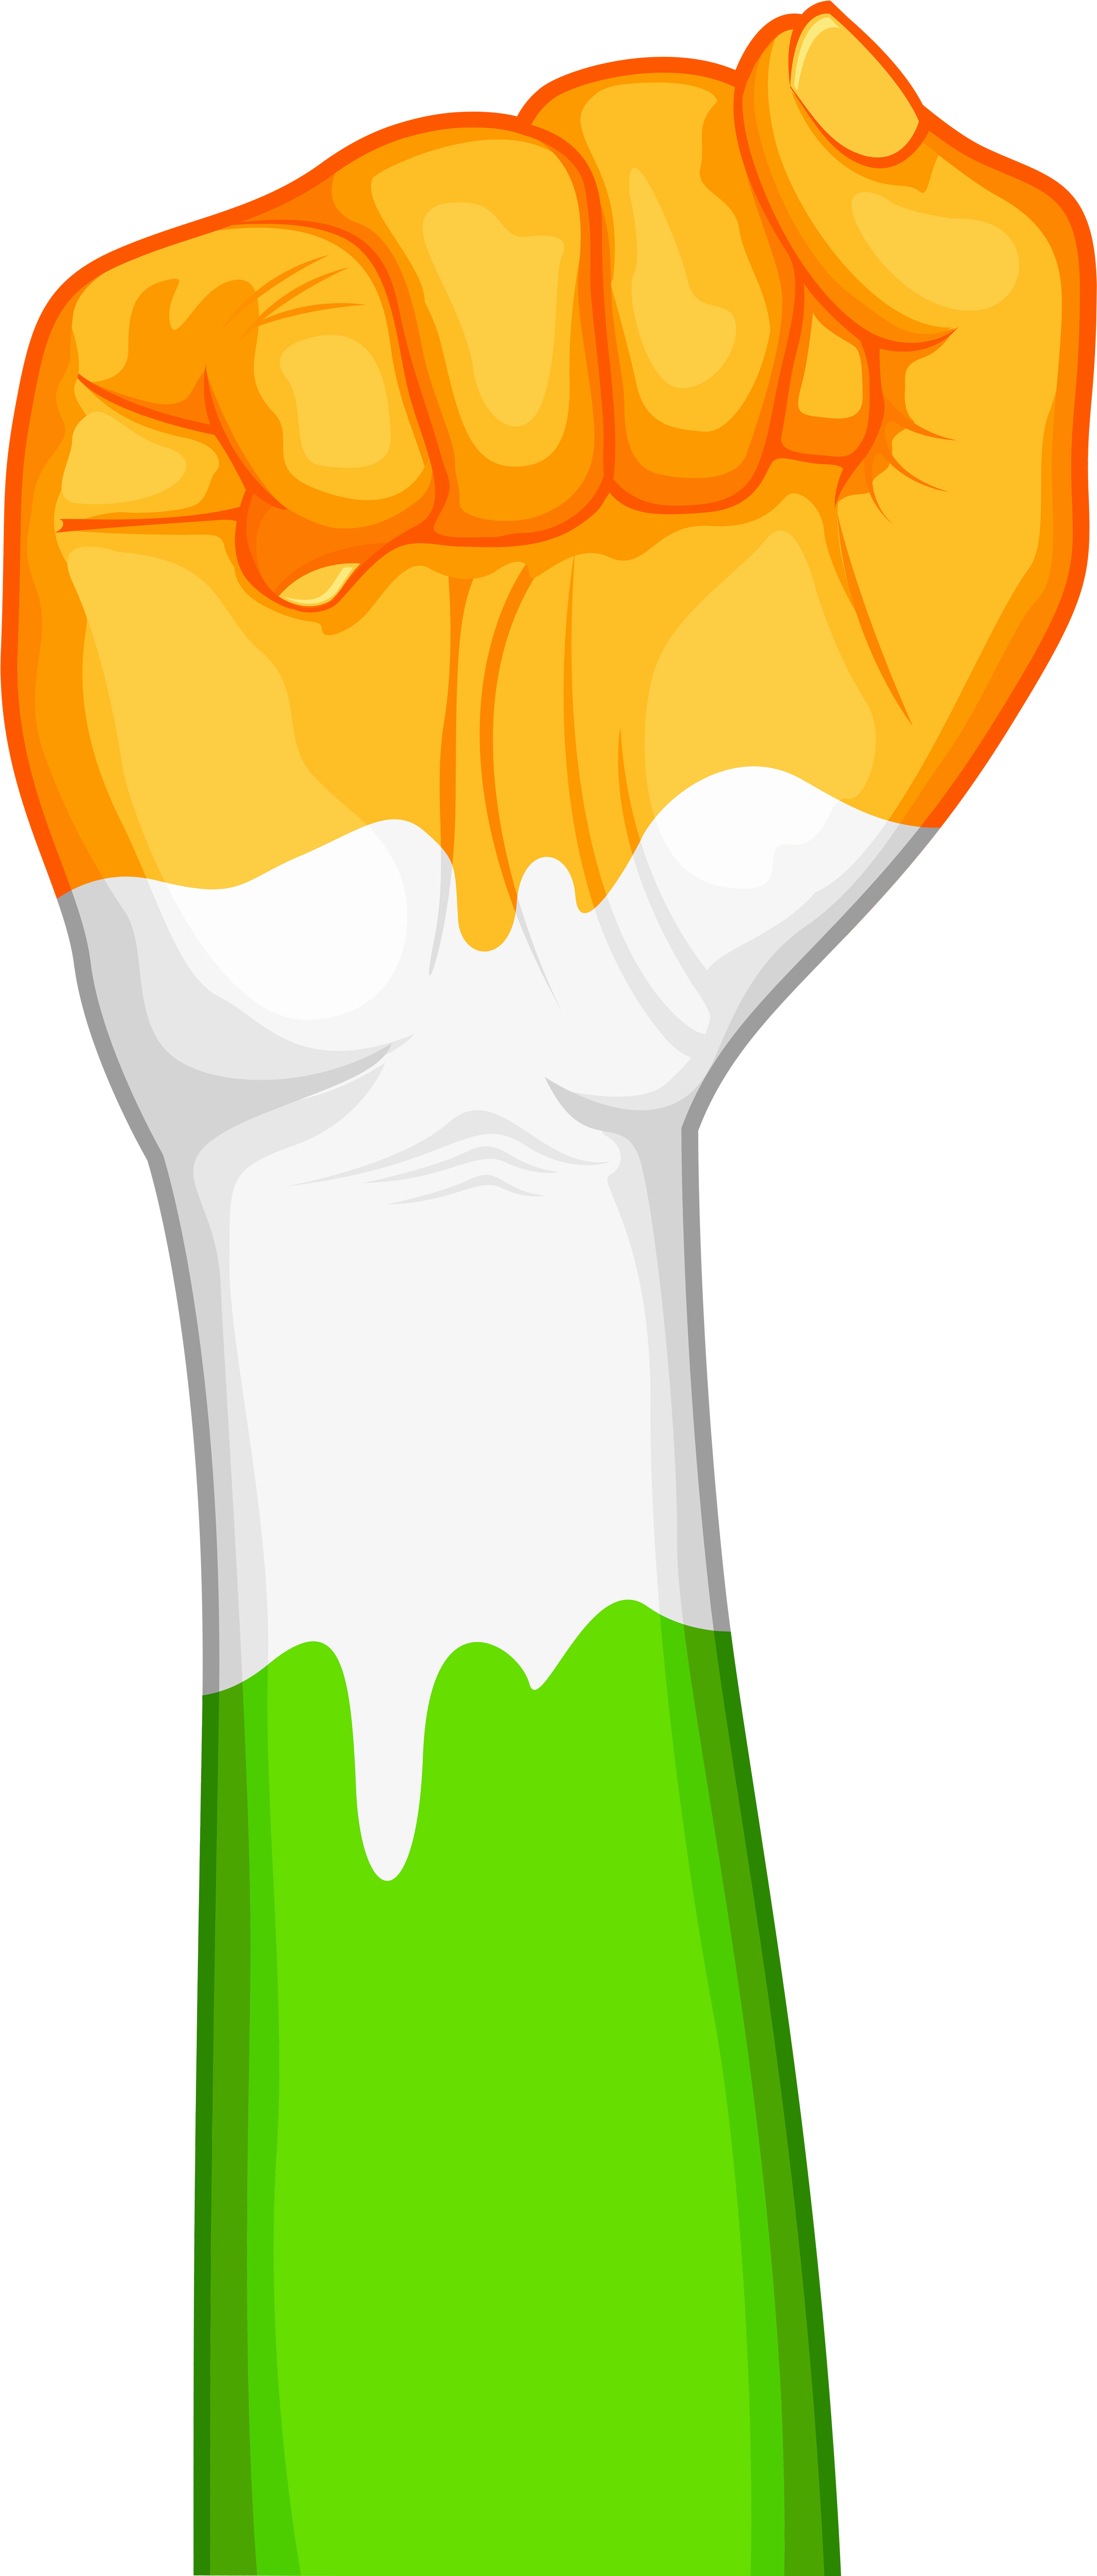 Indian Independence Day Clipart Png Download Full Size Clipart 780651 Pinclipart